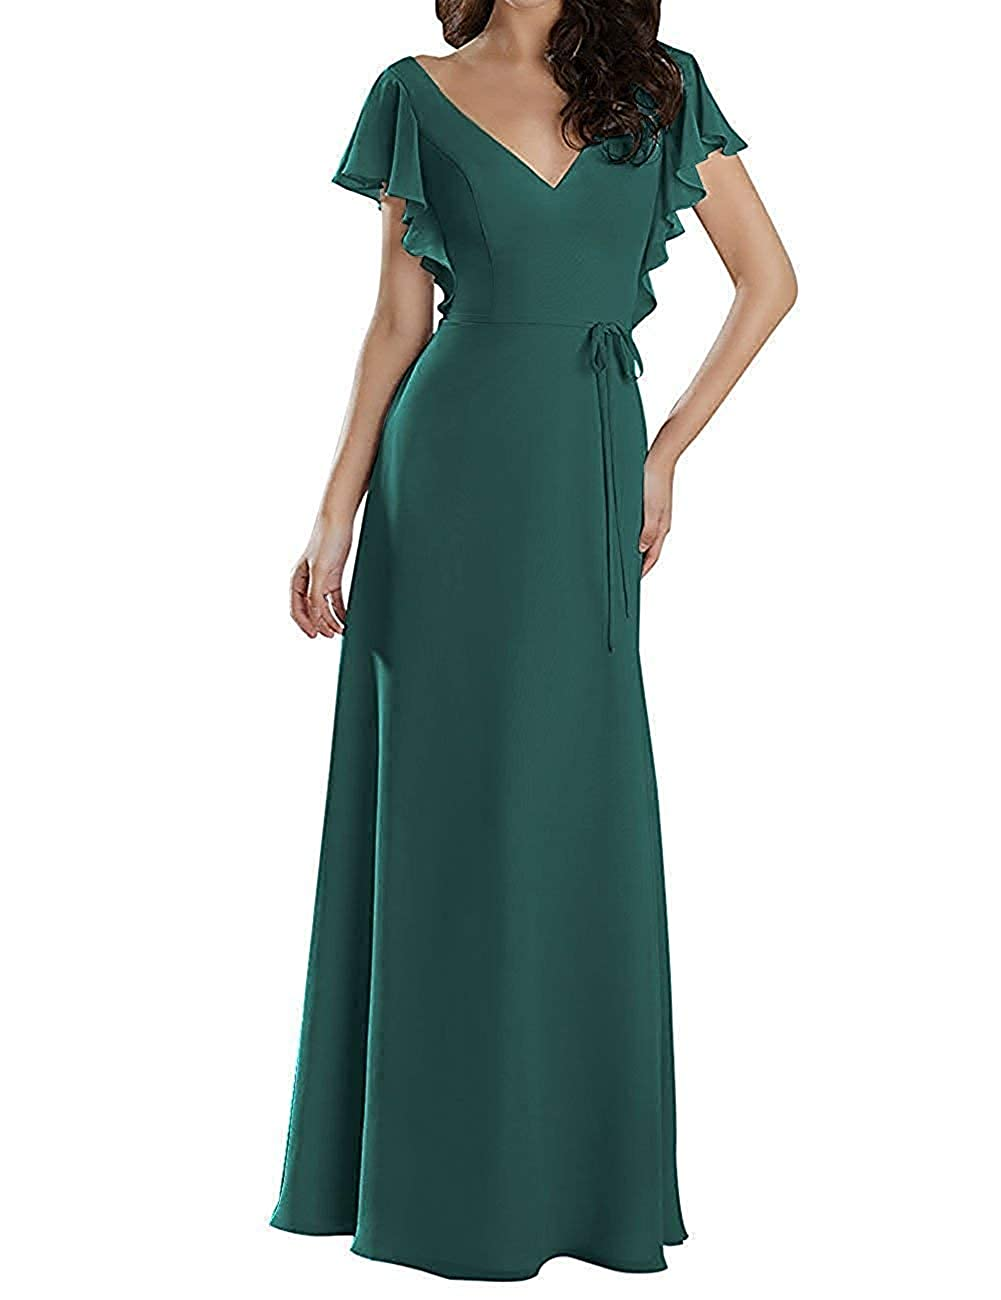 Green Mother of The Bride Dresses Plus Size Long Evening Gown with Short Sleeves Mother Dress for Wedding